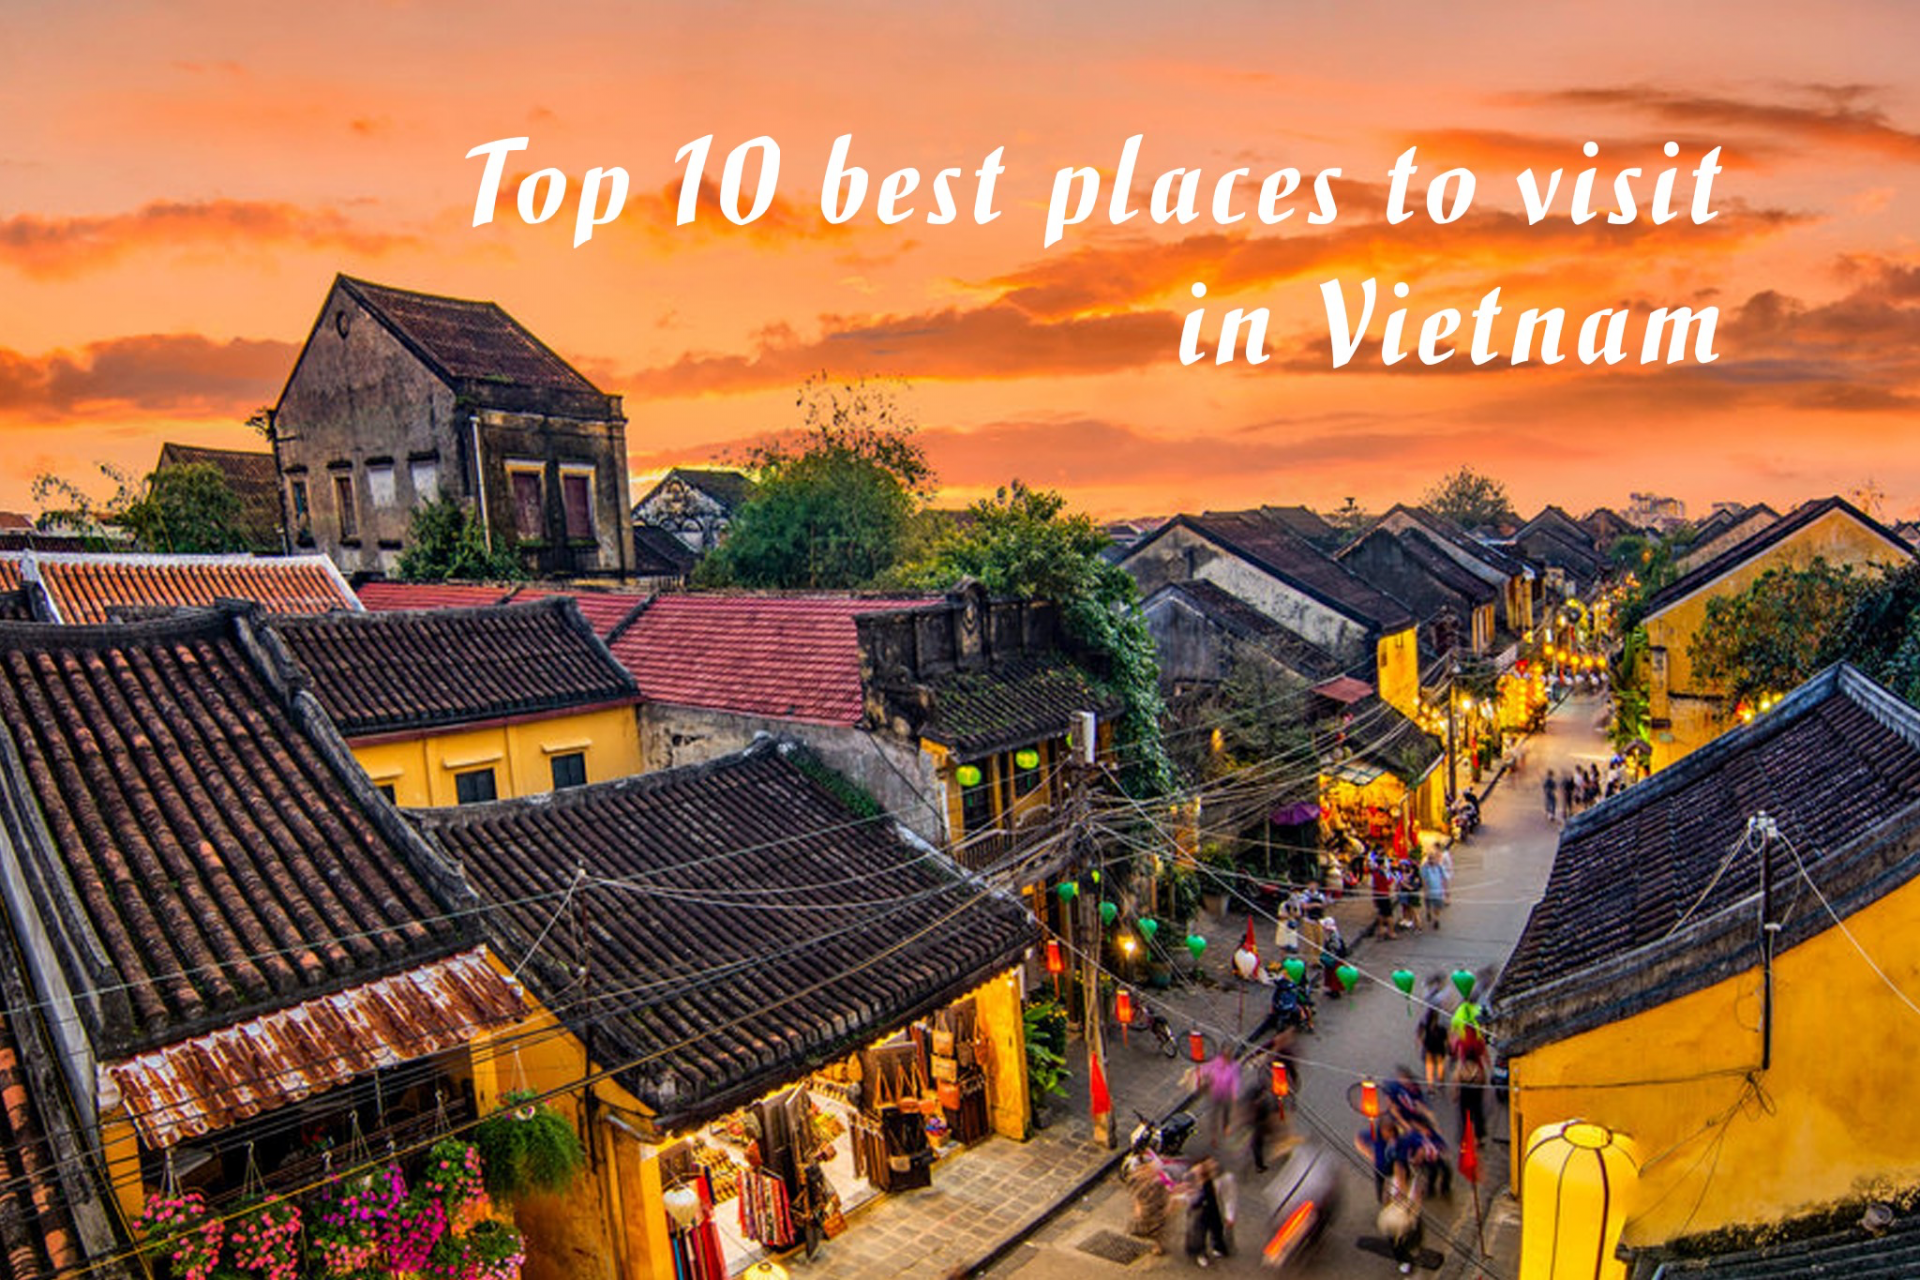 Top 10 Best Places to Visit in Vietnam - Video